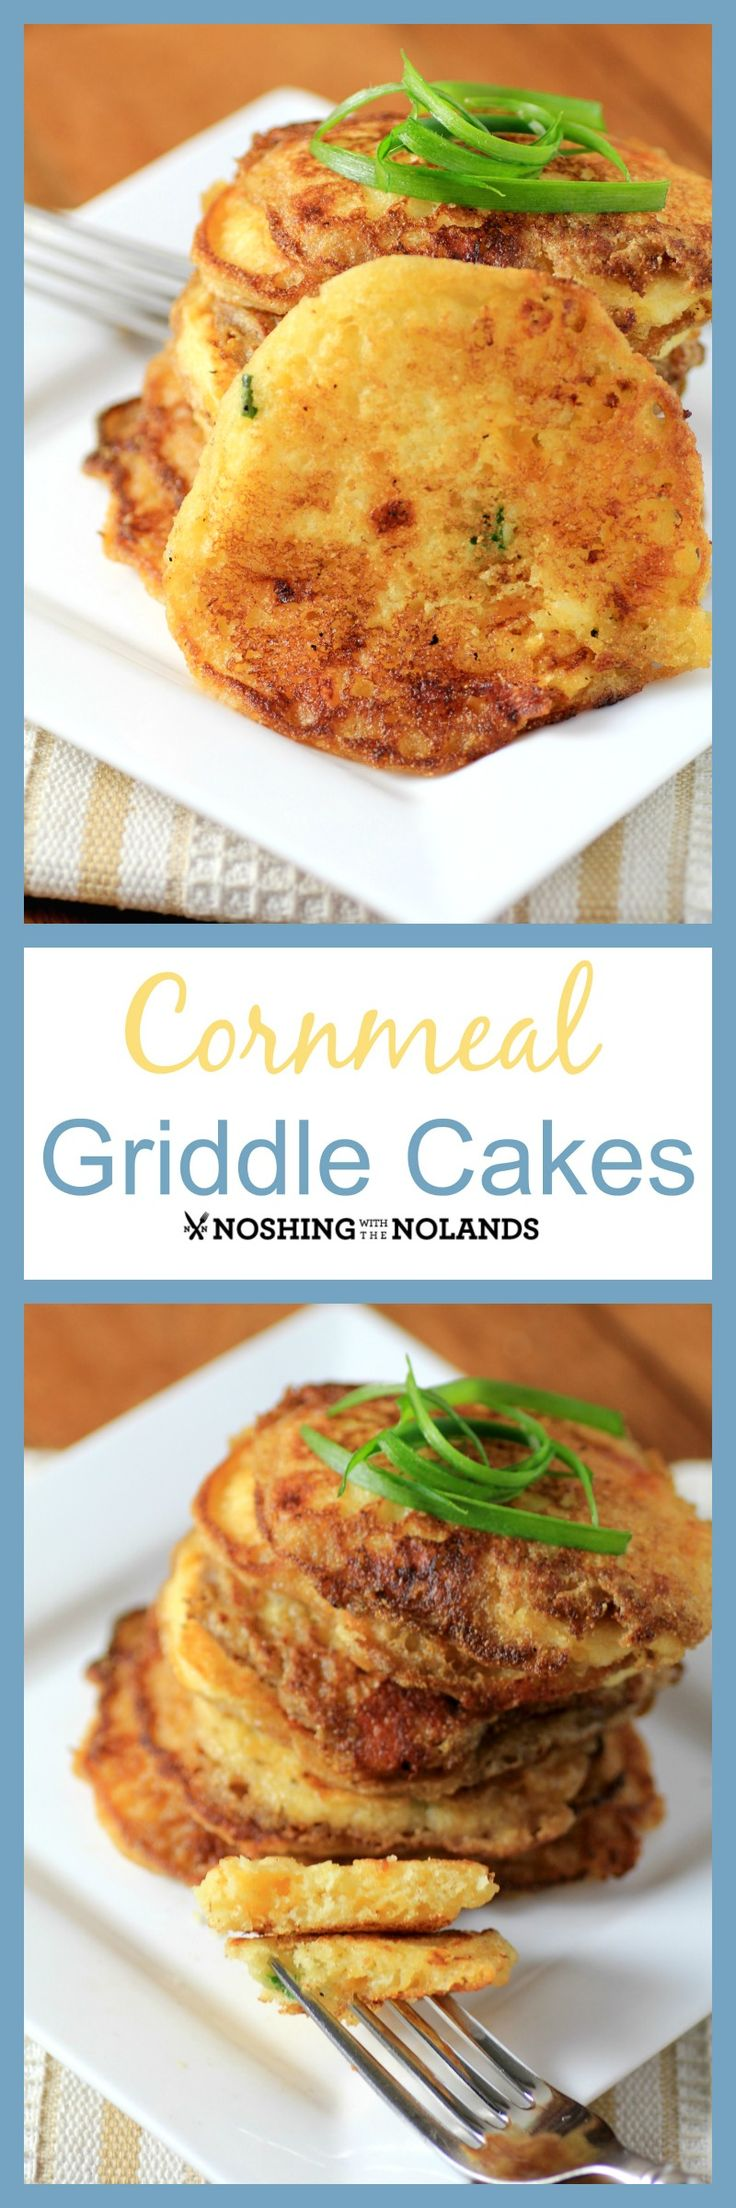 We are with #BreadBakers today with our Cornmeal Griddle Cakes. These ...